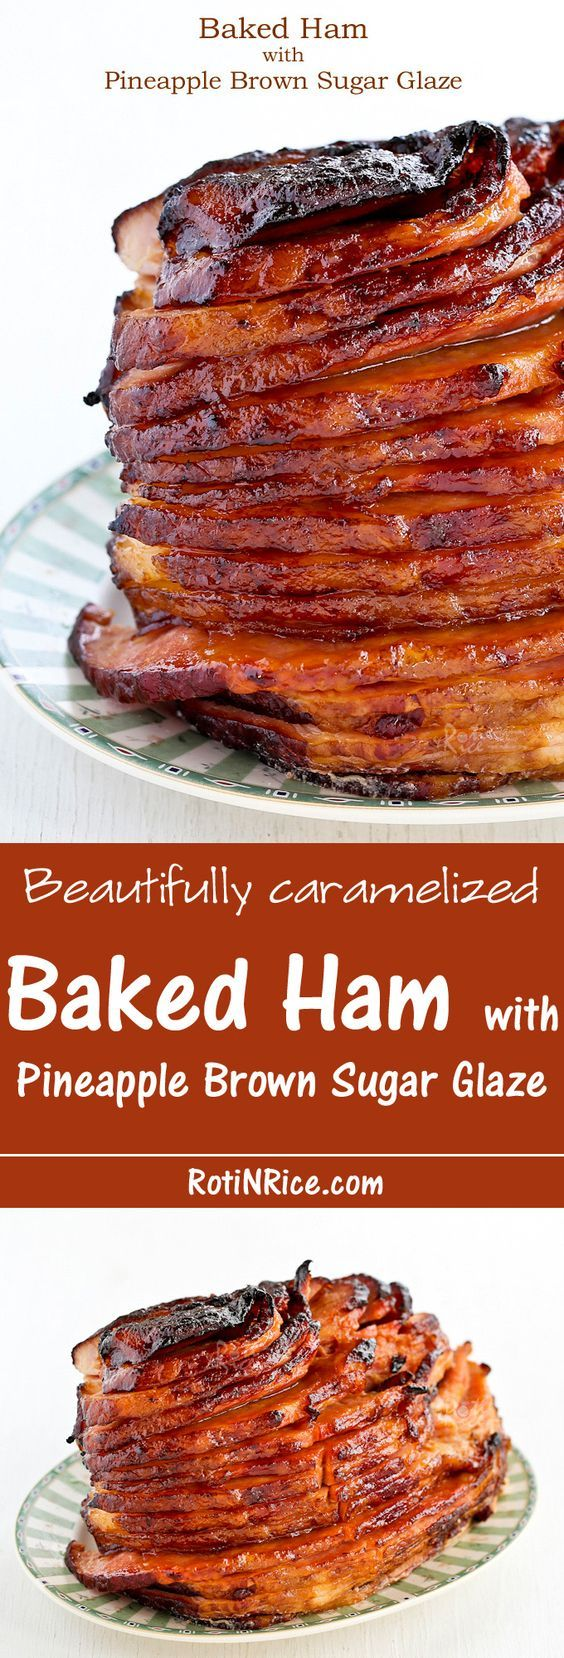 Beautifully caramelized Baked Ham with Pineapple Brown Sugar Glaze for the holidays or Sunday supper. Feeds a crowd and takes only minutes of hands on prep time. | Food to gladden the heart at RotiNRice.com: